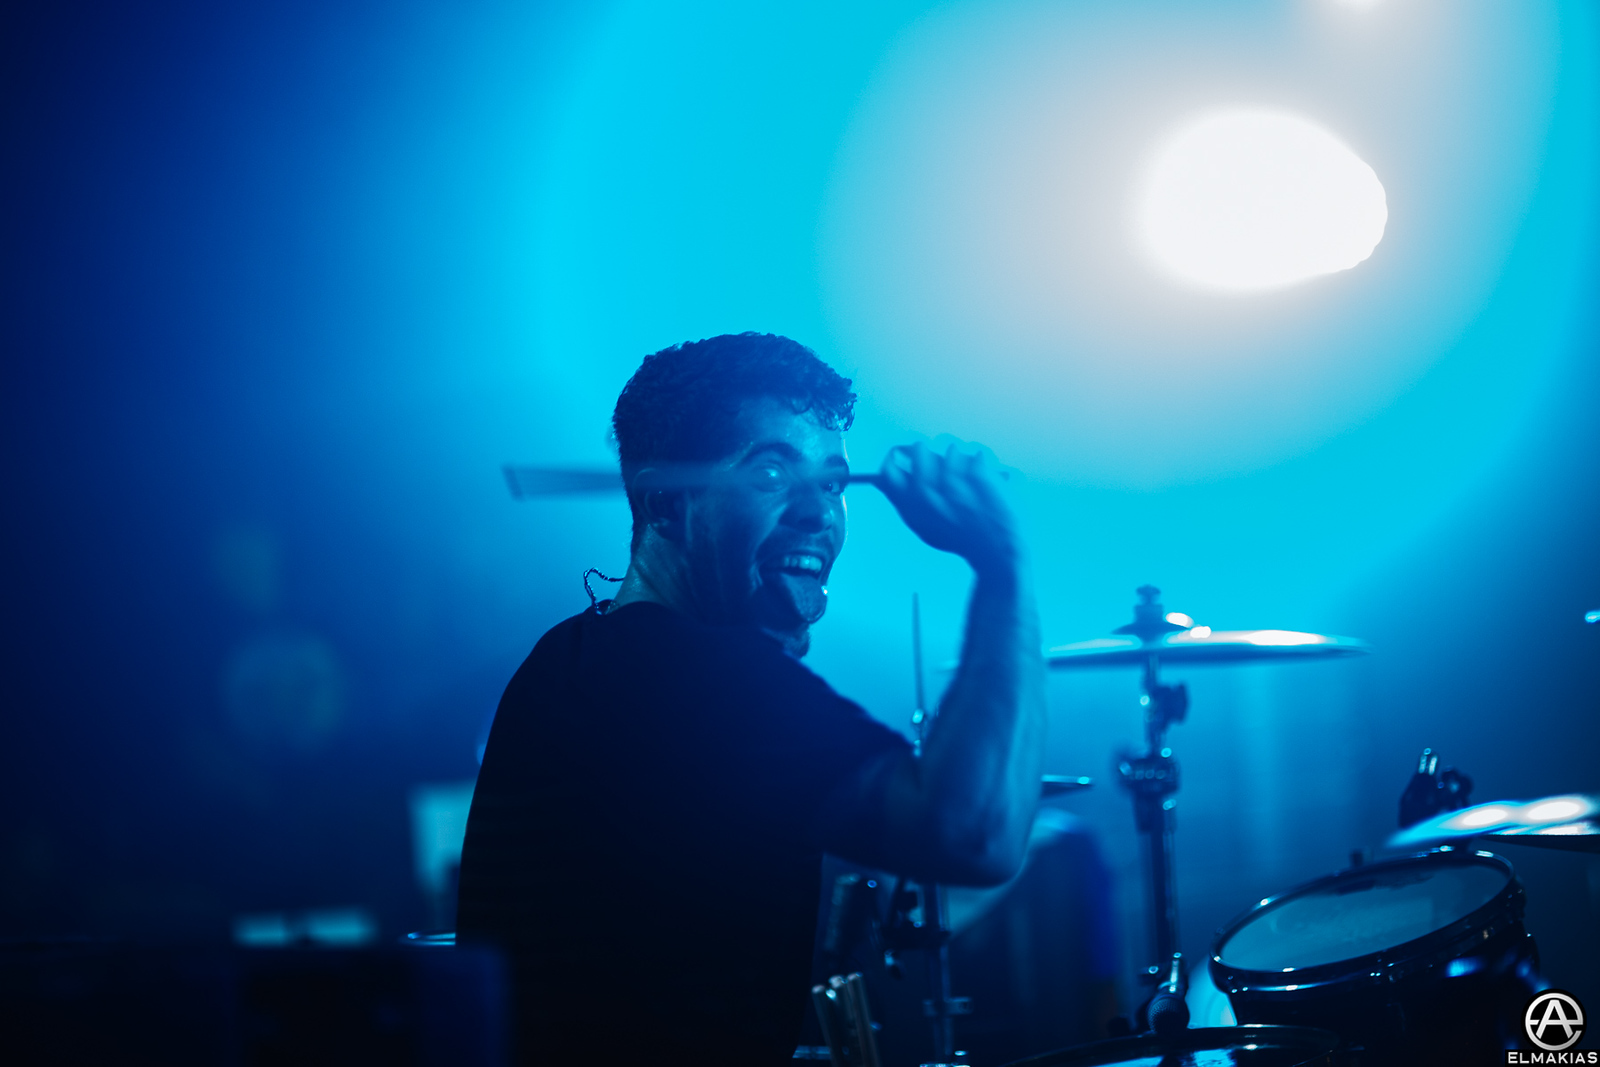 Alex Shelnutt of A Day To Remember live at Ray Just Arena in Moscow, Russia